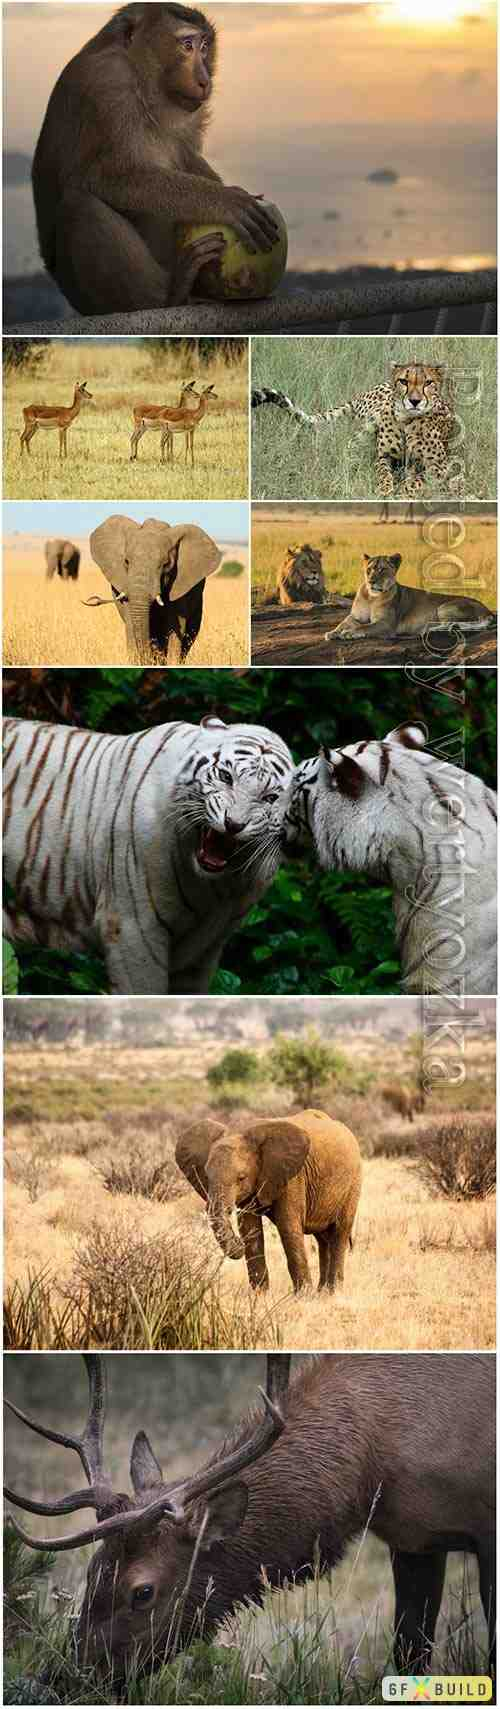 Animals in nature, tiger, elephant, leopard, monkey